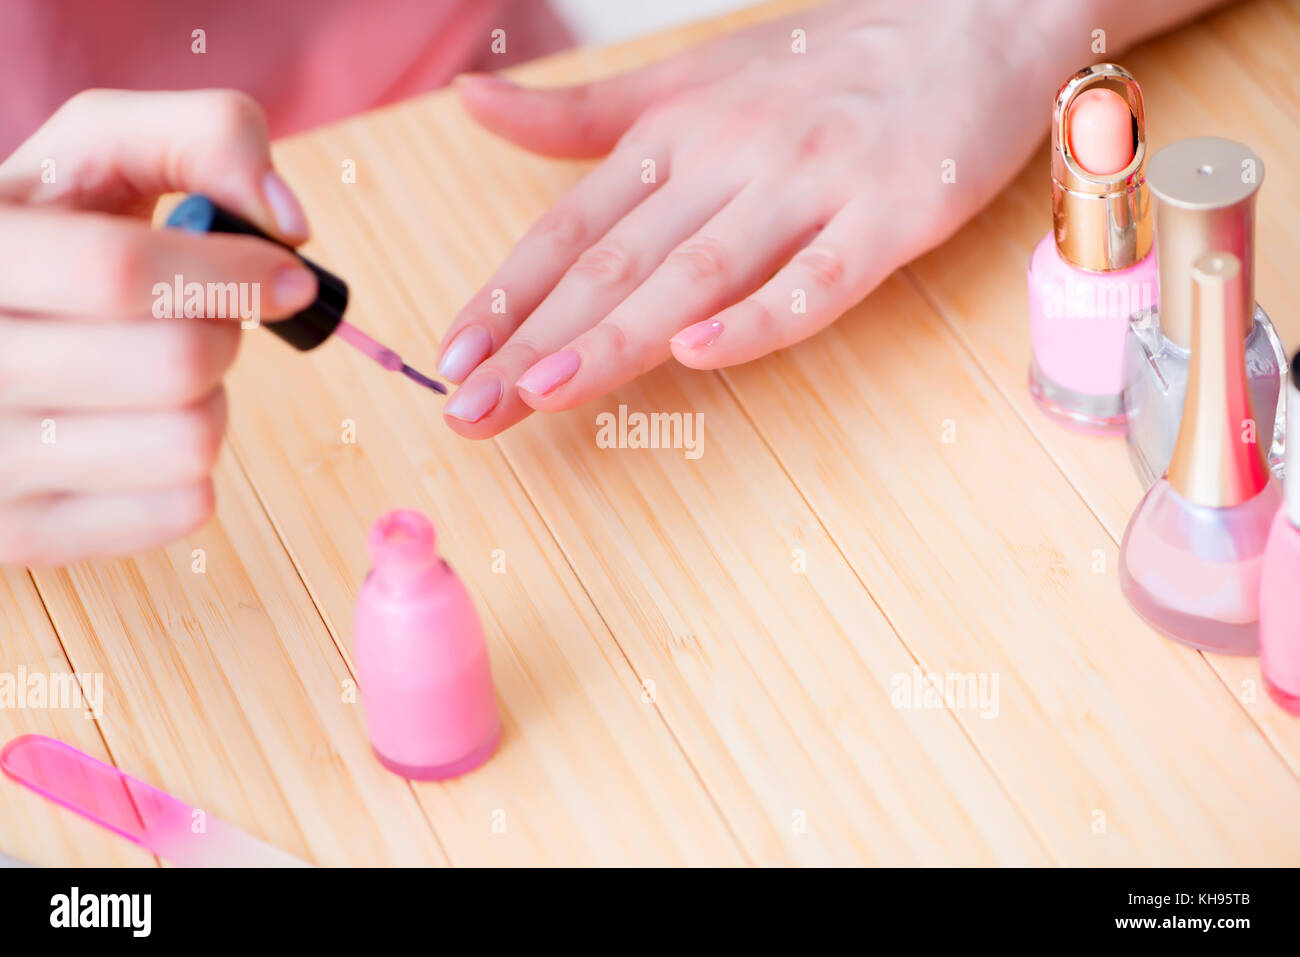 Beauty products nail care tools pedicure closeup Stock Photo ...